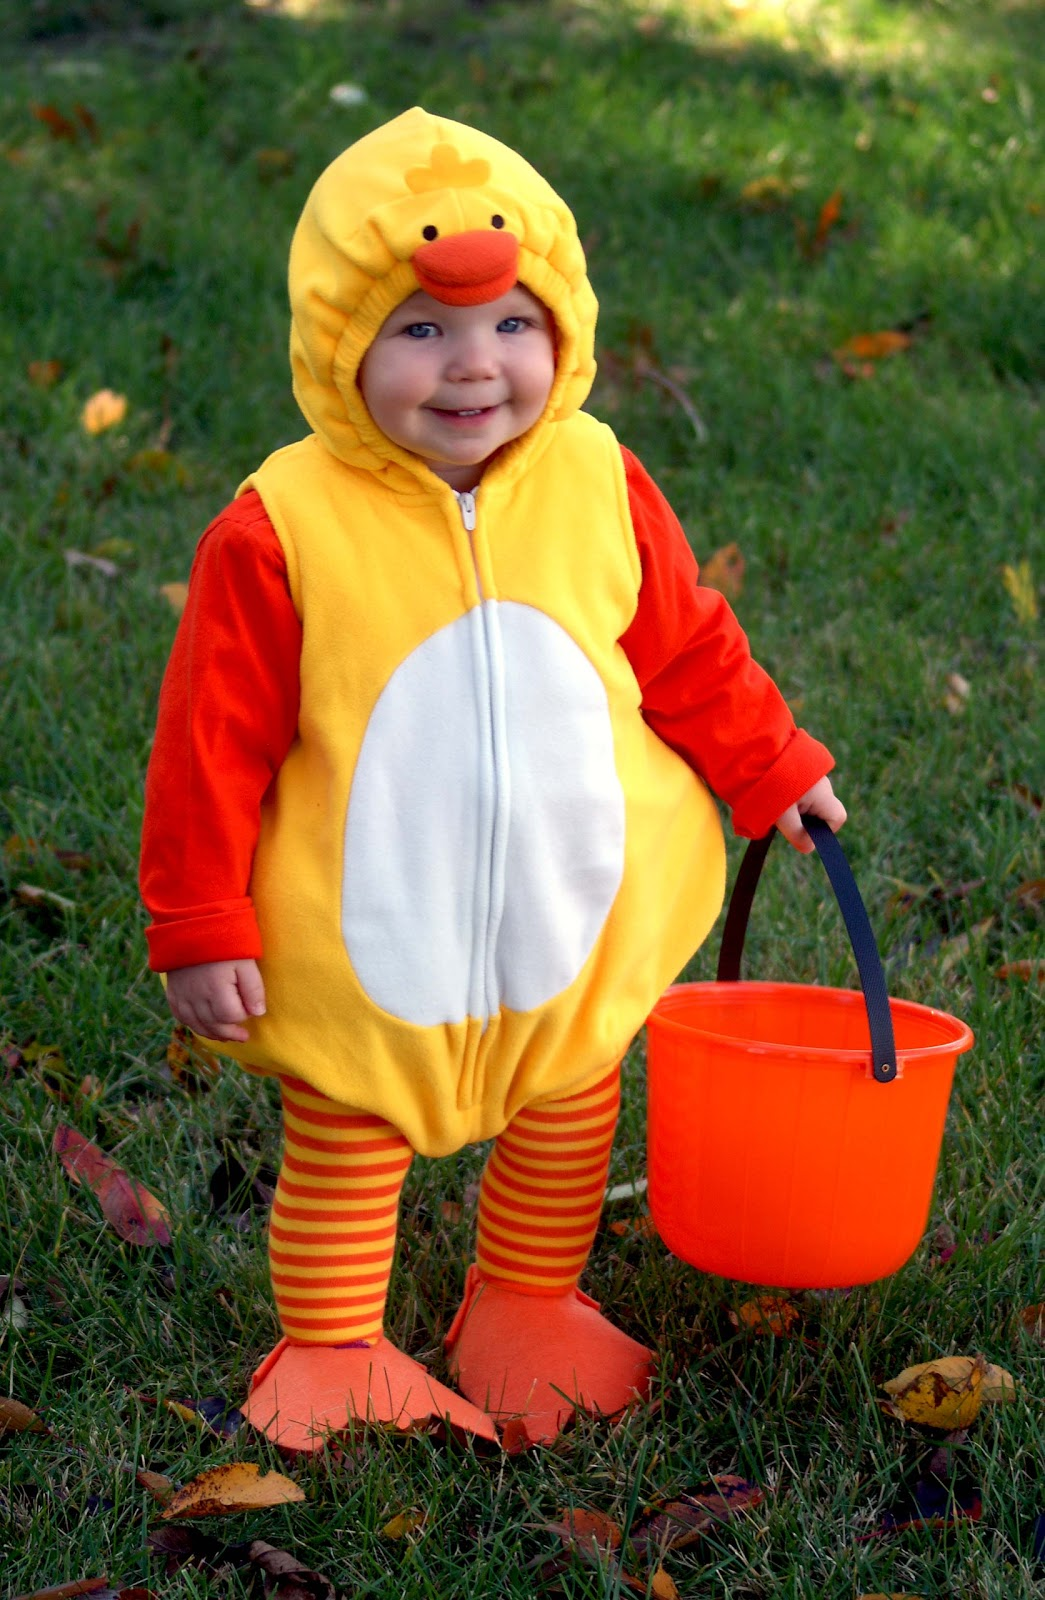 Trick or Treat. We bought Lolau0027s duck costume ...  sc 1 st  Simply Living & Simply Living: Trick or Treat